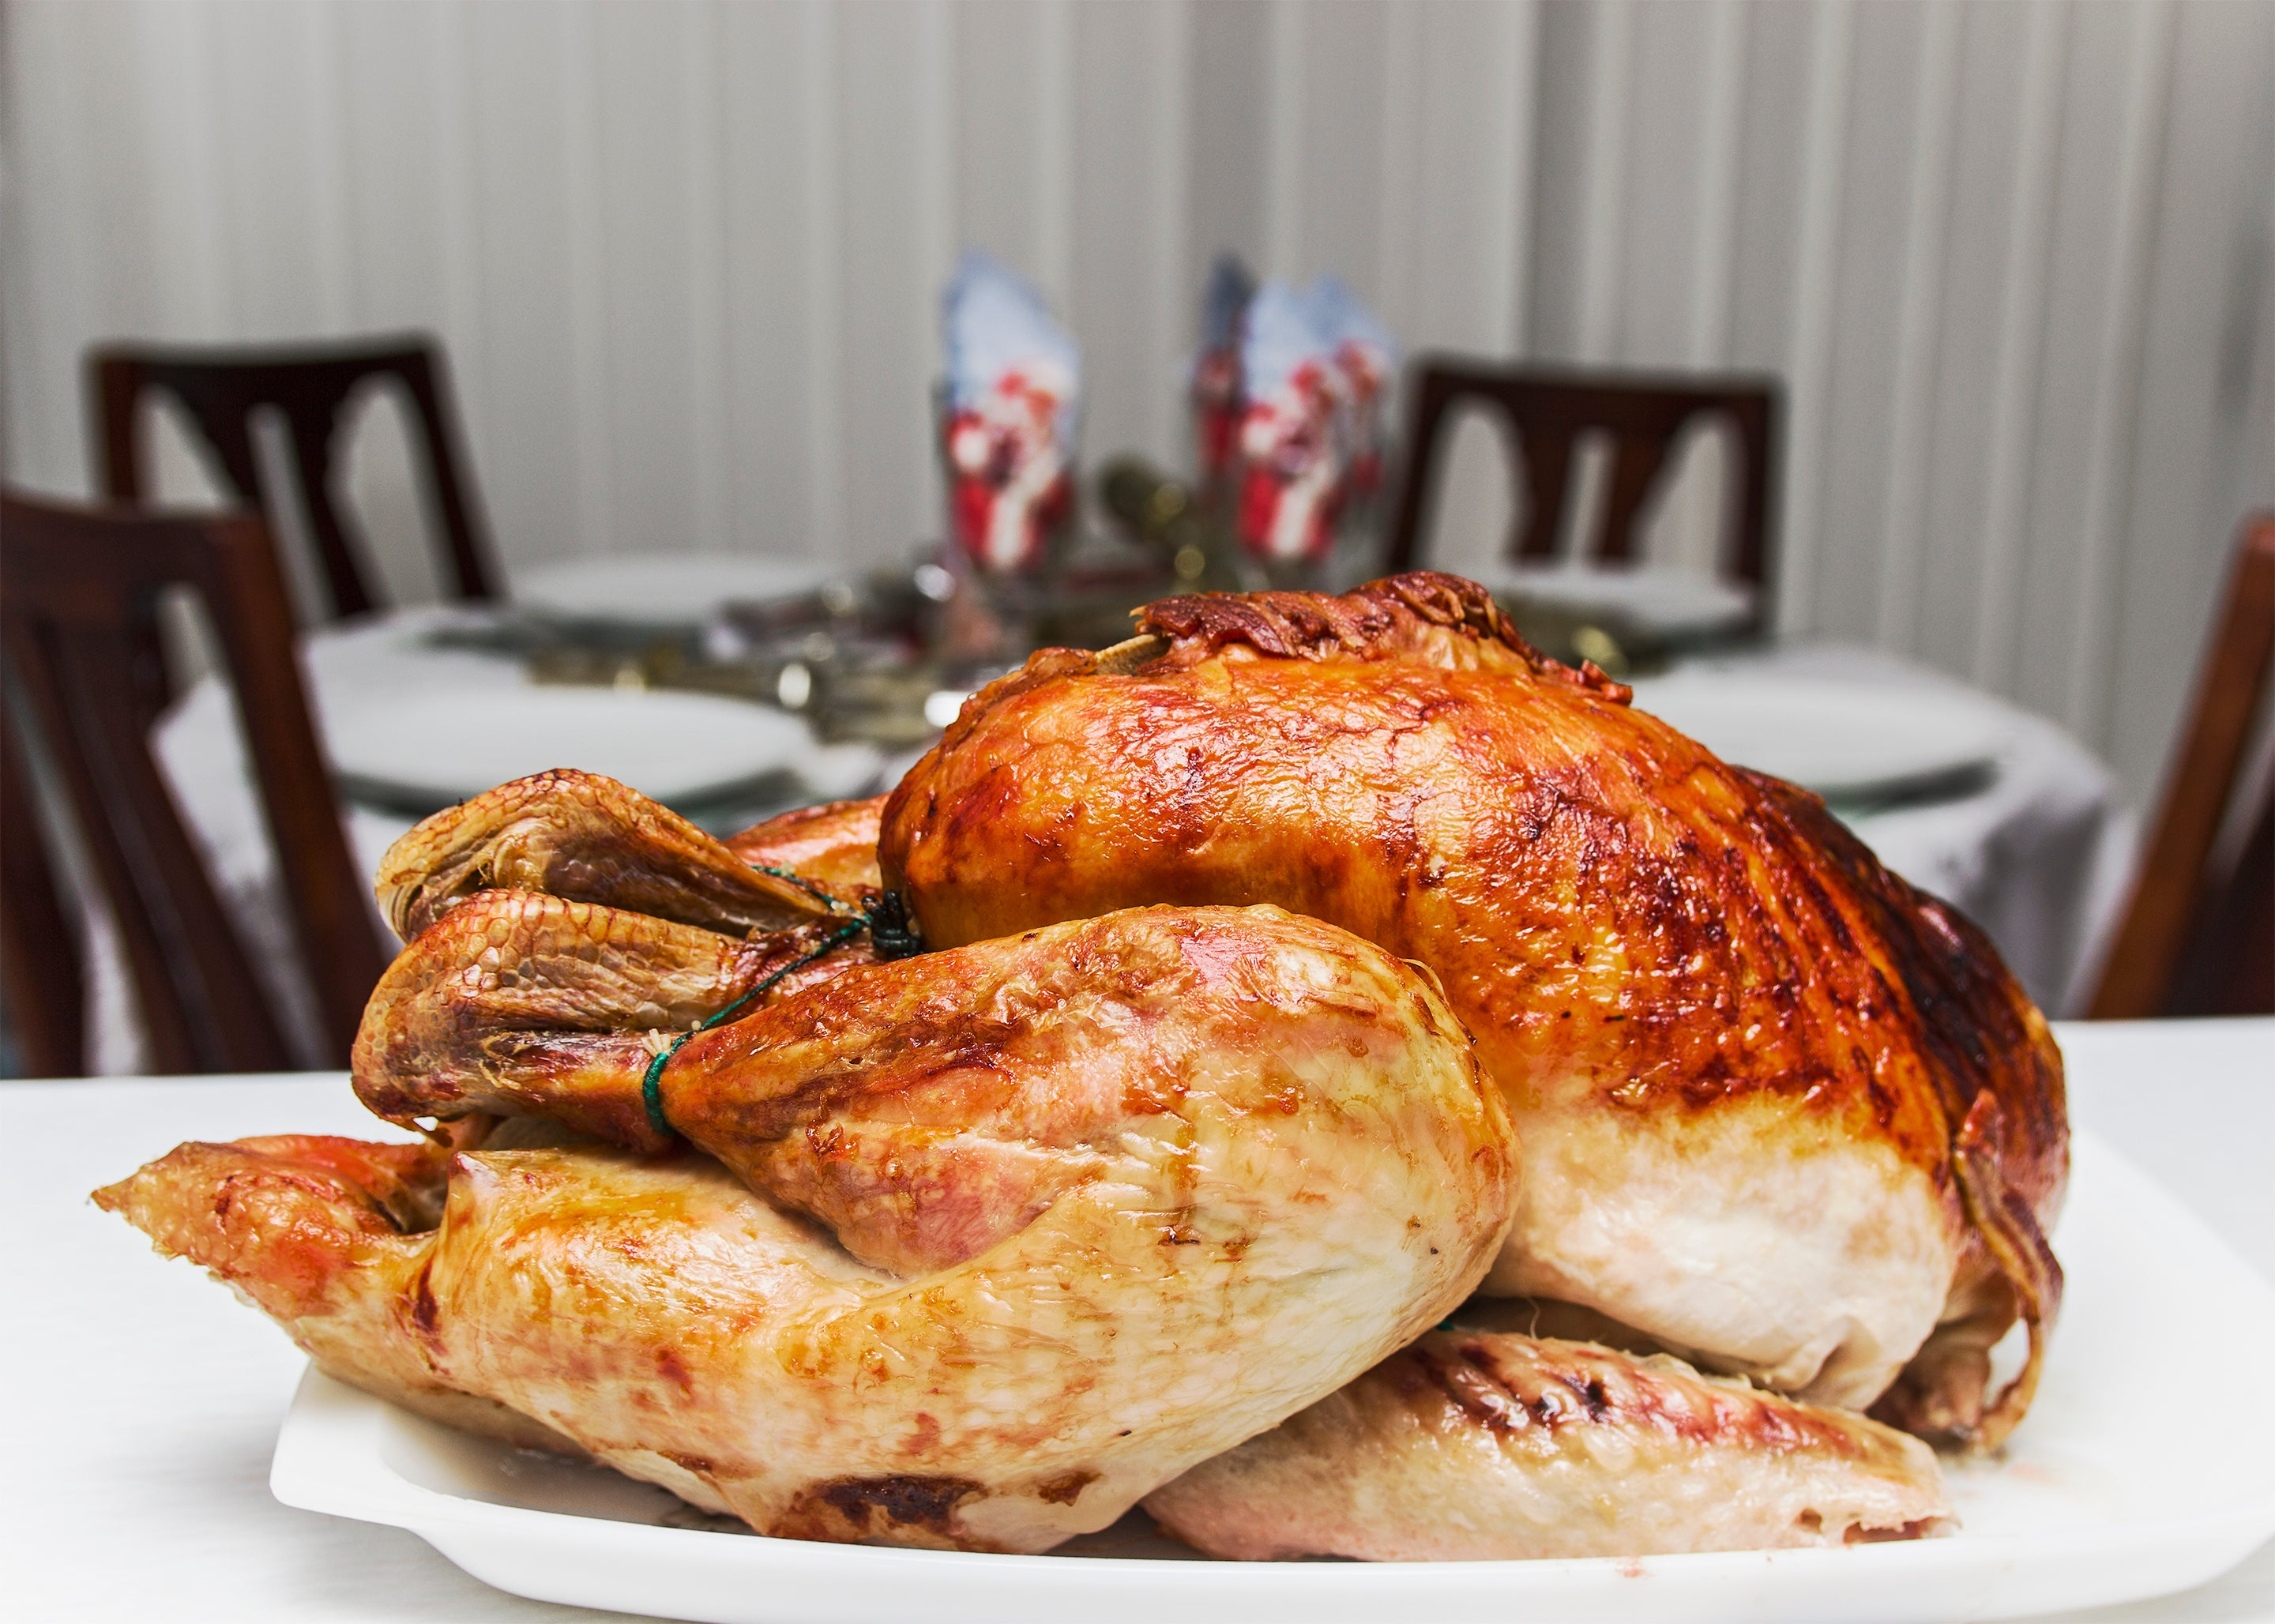 Does Turkey Make You Sleepy Scientific American